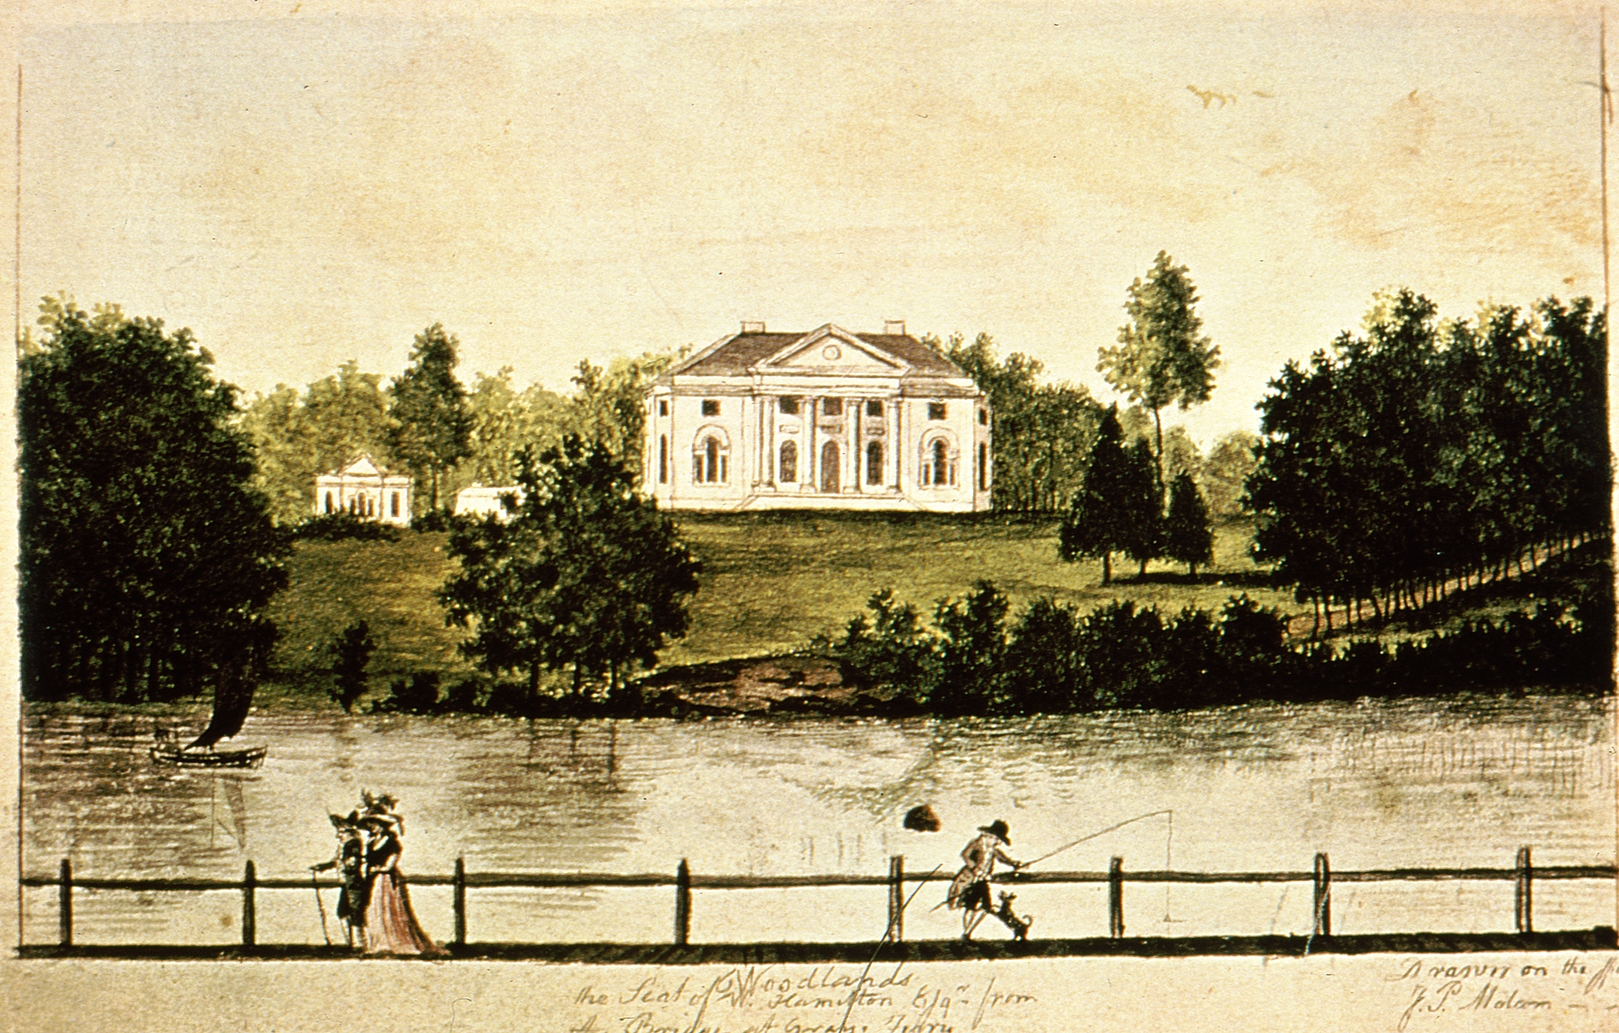 William Hamilton's mansion as seen from across the river depicted by James Peller Malcom ca. 1792. (Image: Dietrich American Foundation)